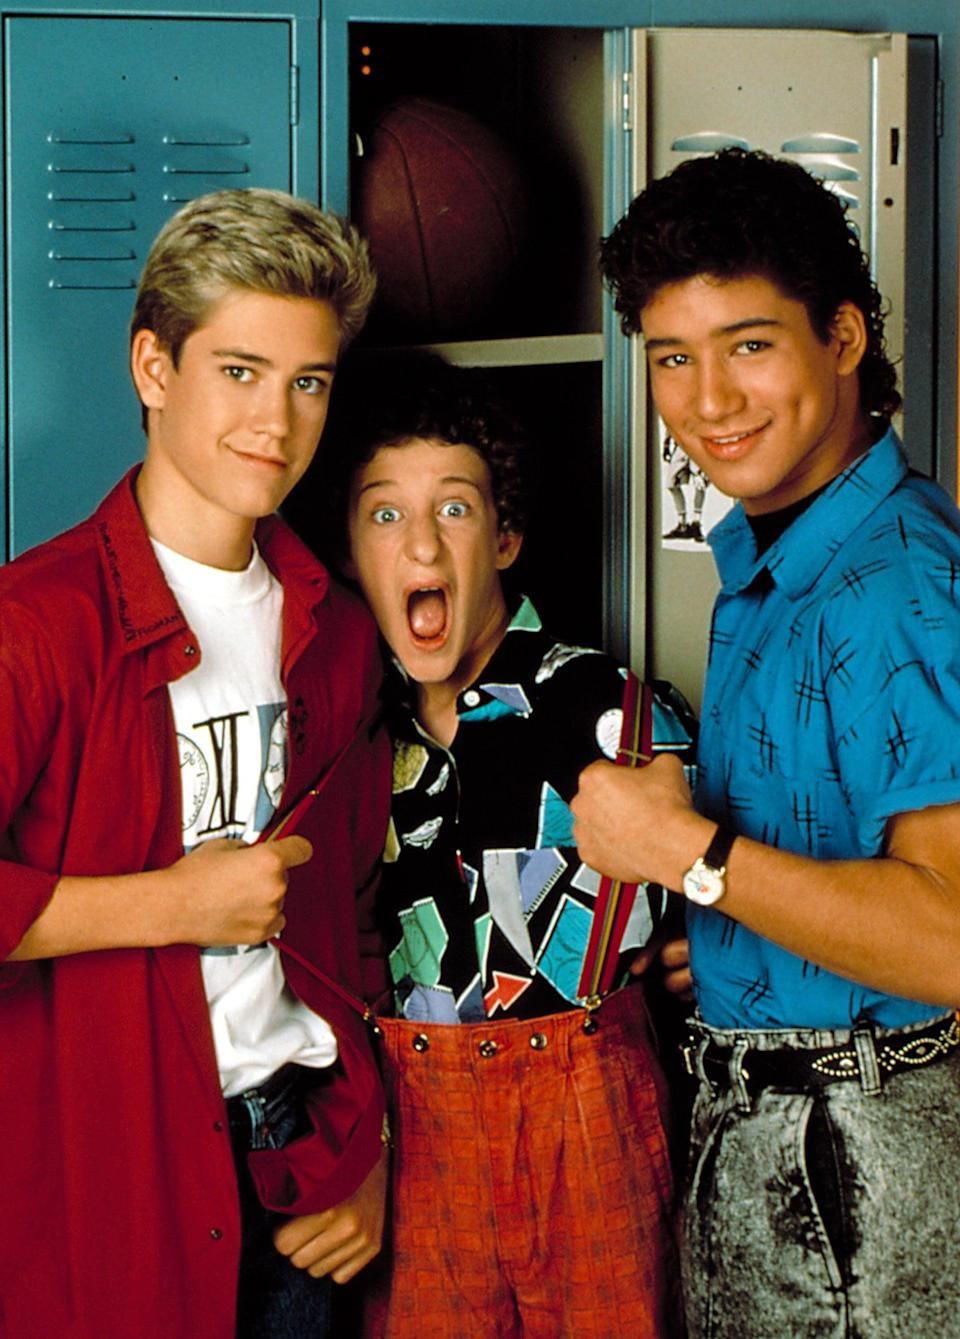 <ul> <li><strong>What to wear for Zack:</strong> Two words: frosted tips. Once you've got that, throw in a pair of high-tops and a button-down denim shirt (tucked in, Preppy).</li> <li><strong>What to wear for Screech:</strong> Pull your baggy printed pants up with some suspenders and wear a loud button-down underneath.</li> <li><strong>What to wear for Slater:</strong> Acid-wash jeans, a black t-shirt, and a colorful button-down with the sleeves rolled up to show off your muscles.</li> <li><strong>How to act:</strong> Like you're dodging Mr. Belding.</li> </ul>